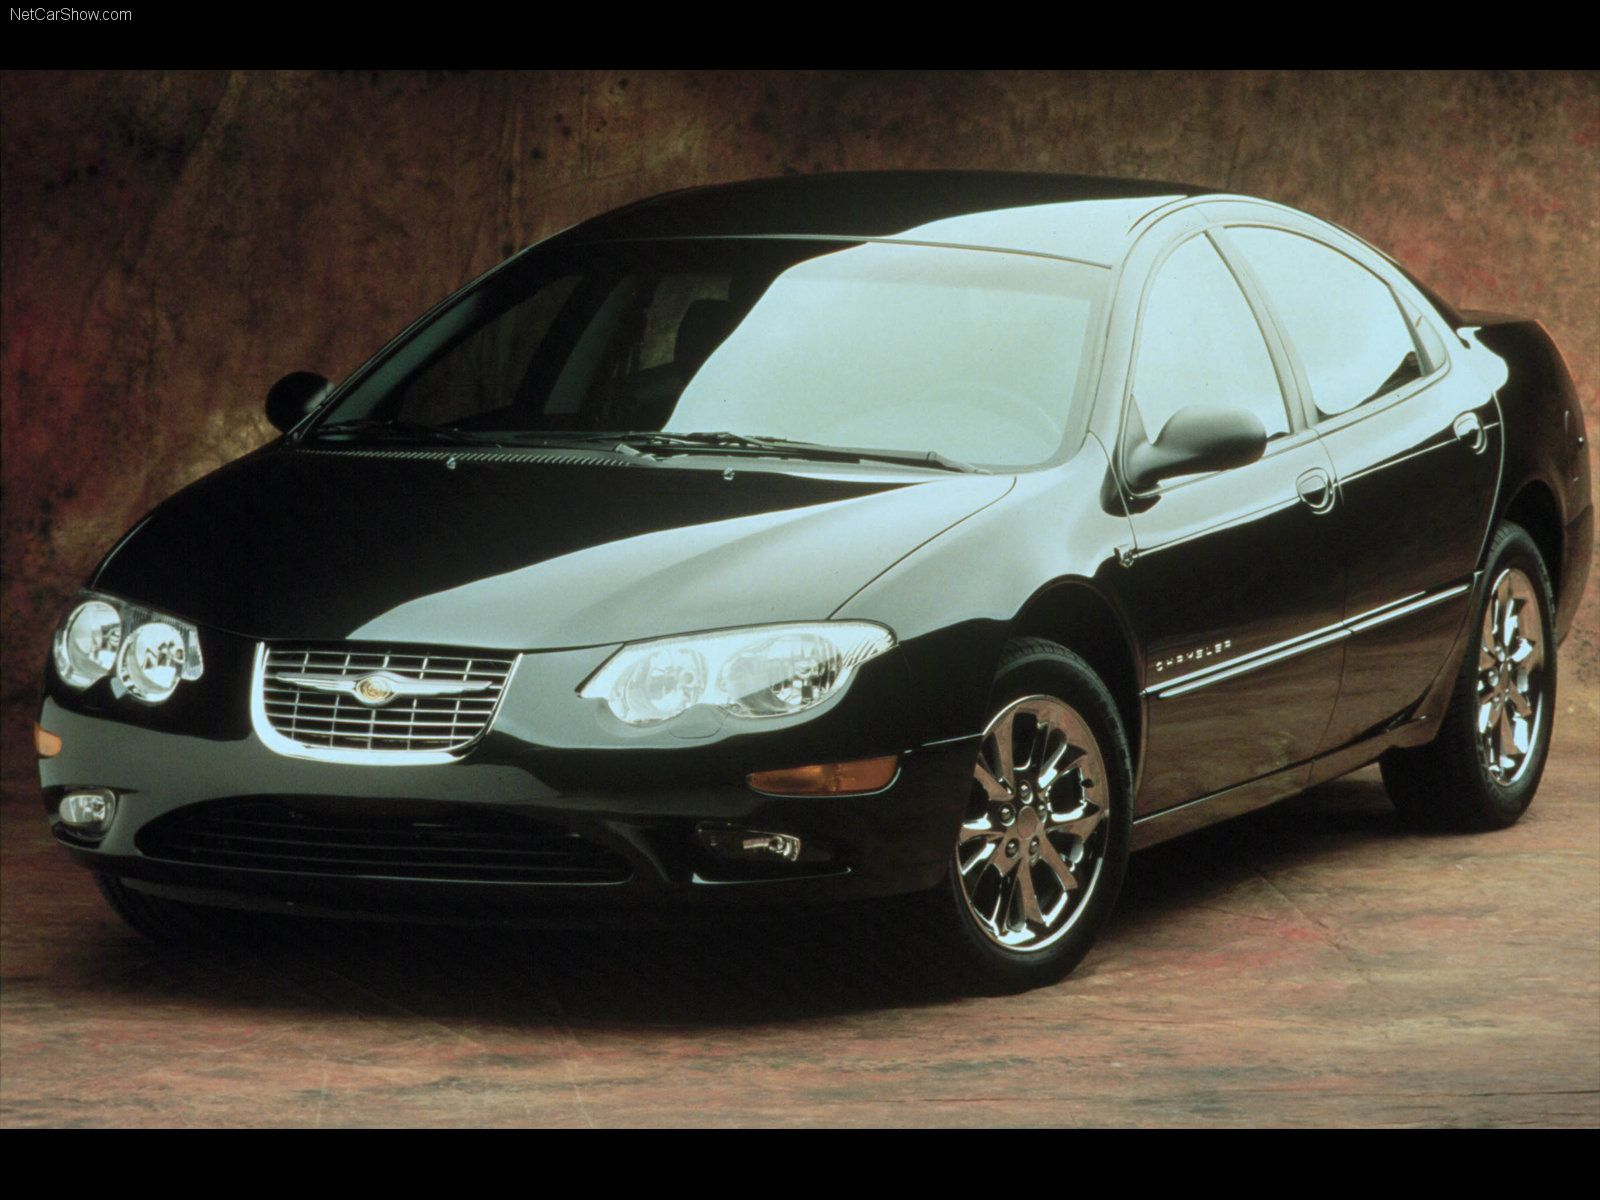 awesome 300m picture incredible looks have aged well cars rh pinterest com 1999 Chrysler 300M Front Brakes 2002 Chrysler 300M Repair Manual